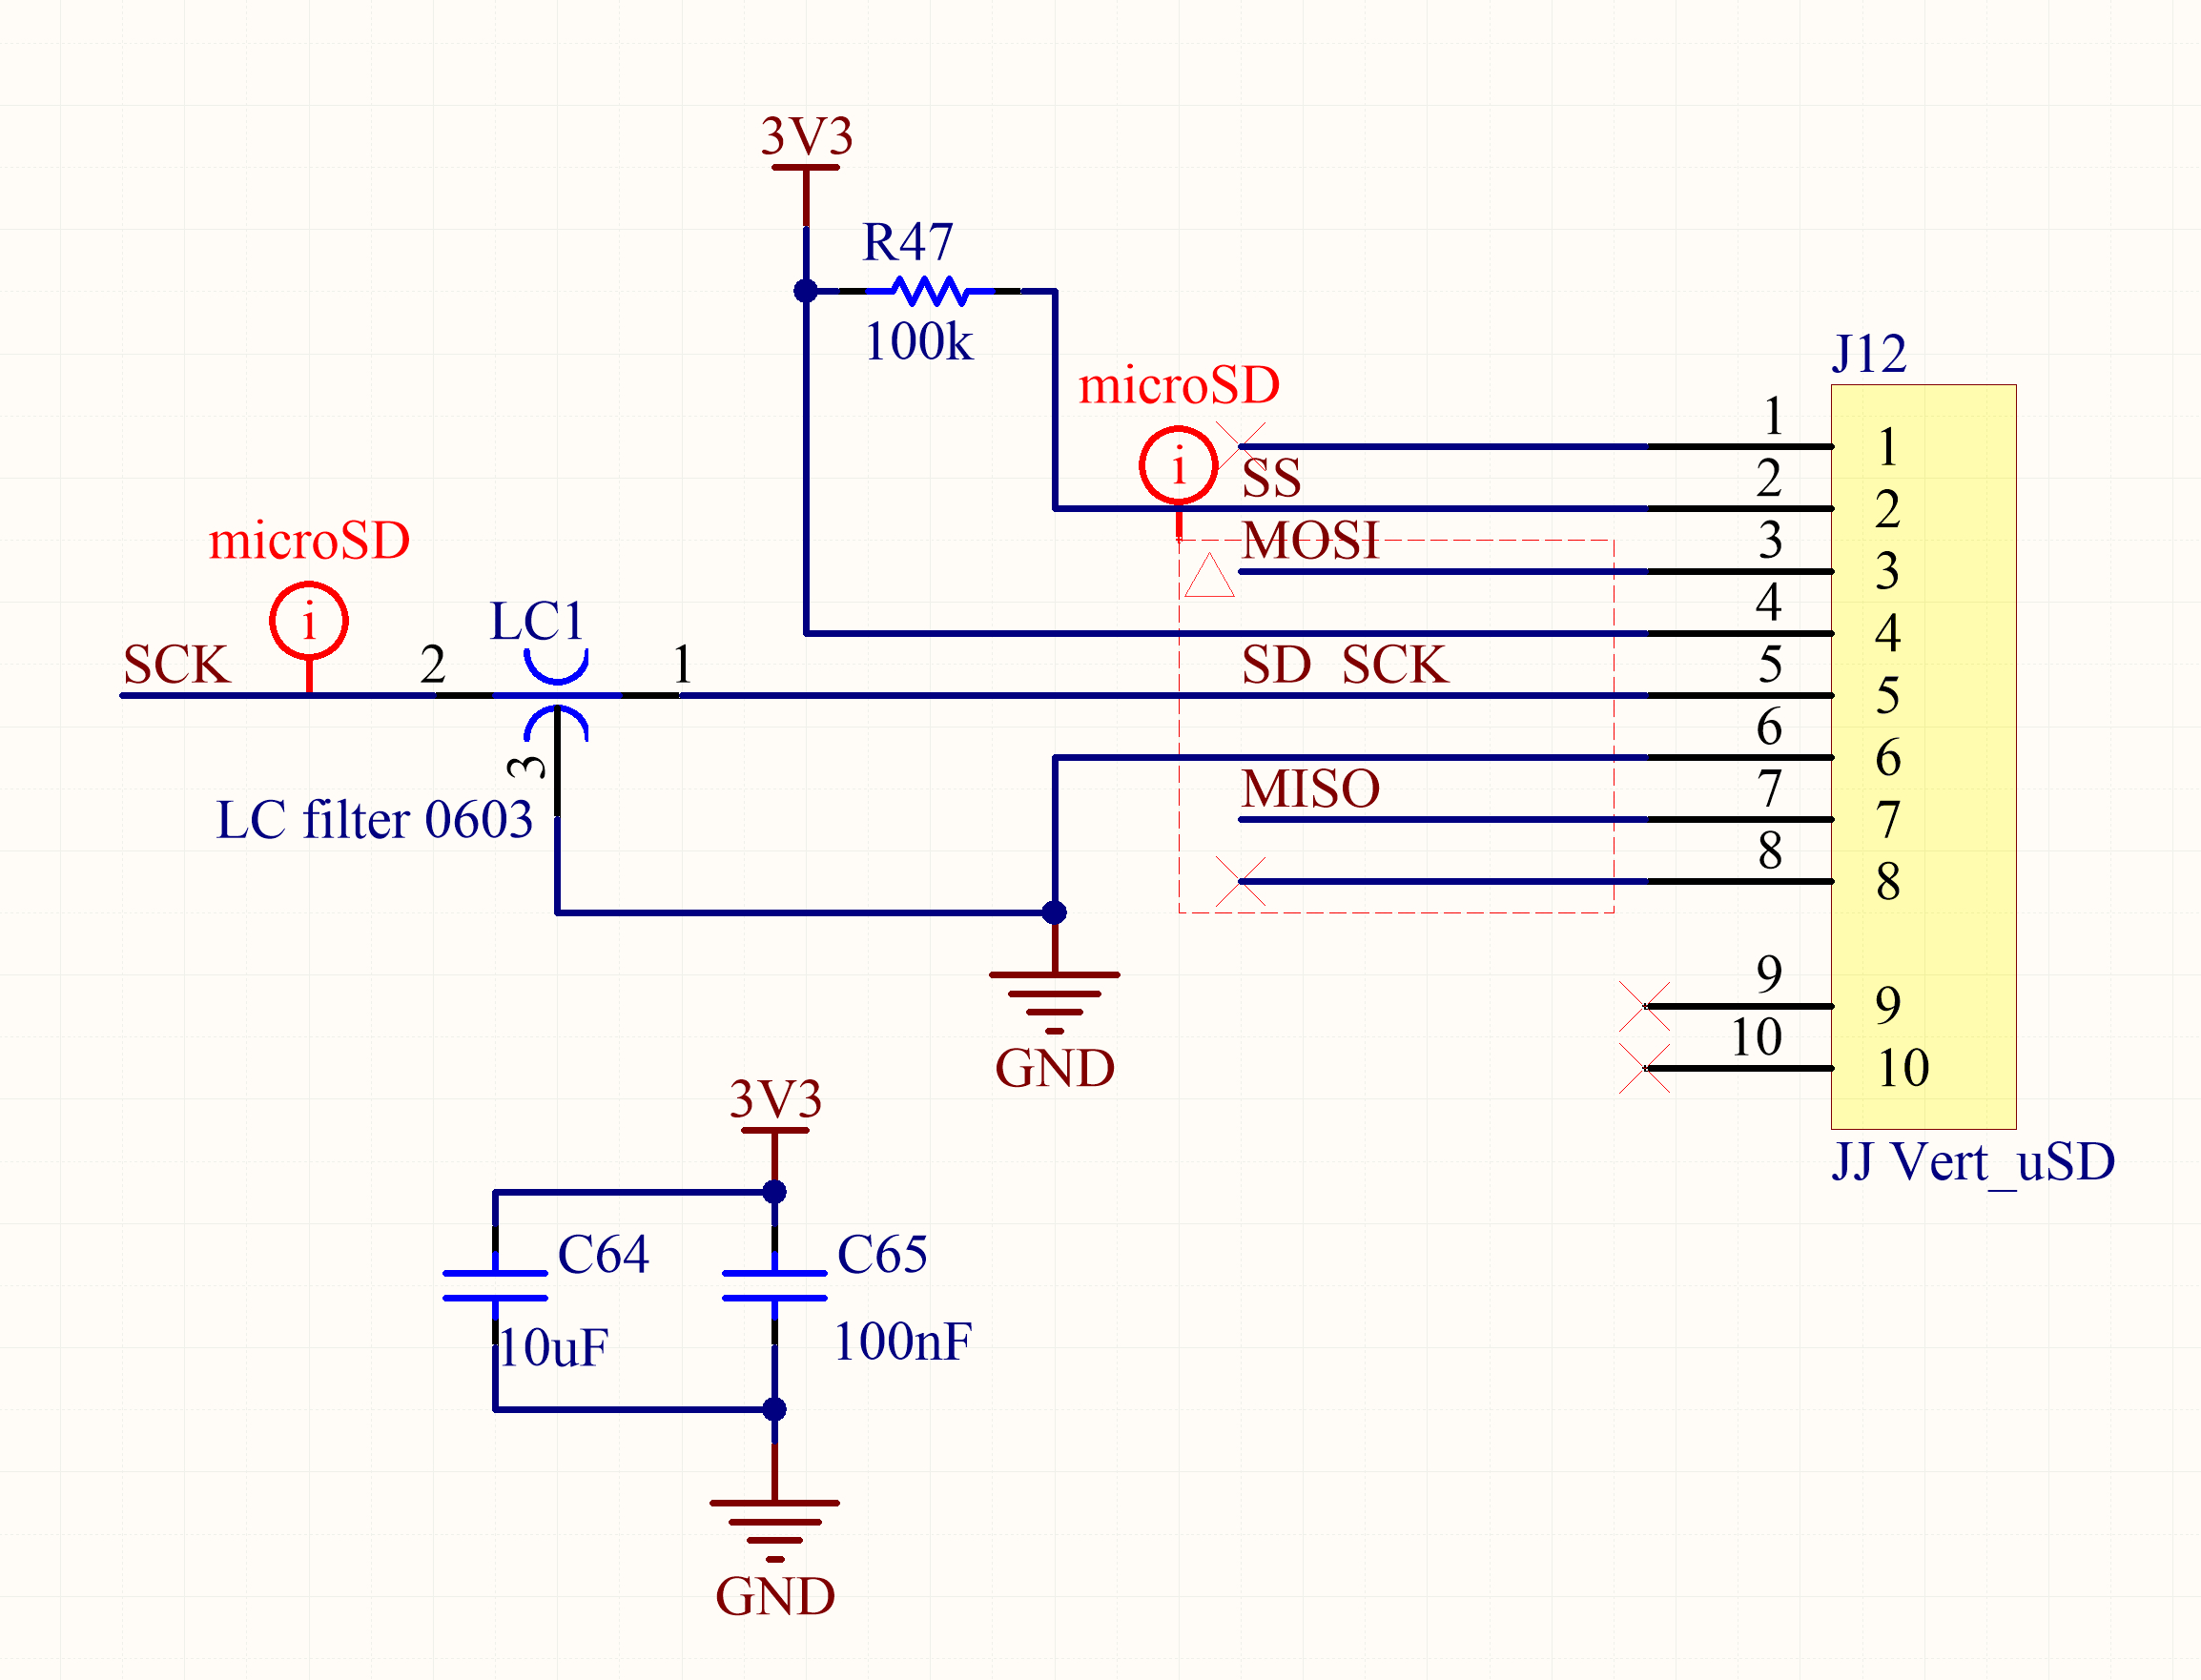 Usb Memory Card Reader Circuit Diagram -|- Vinny.oleo-Vegetal - Usb Card Reader Wiring Diagram